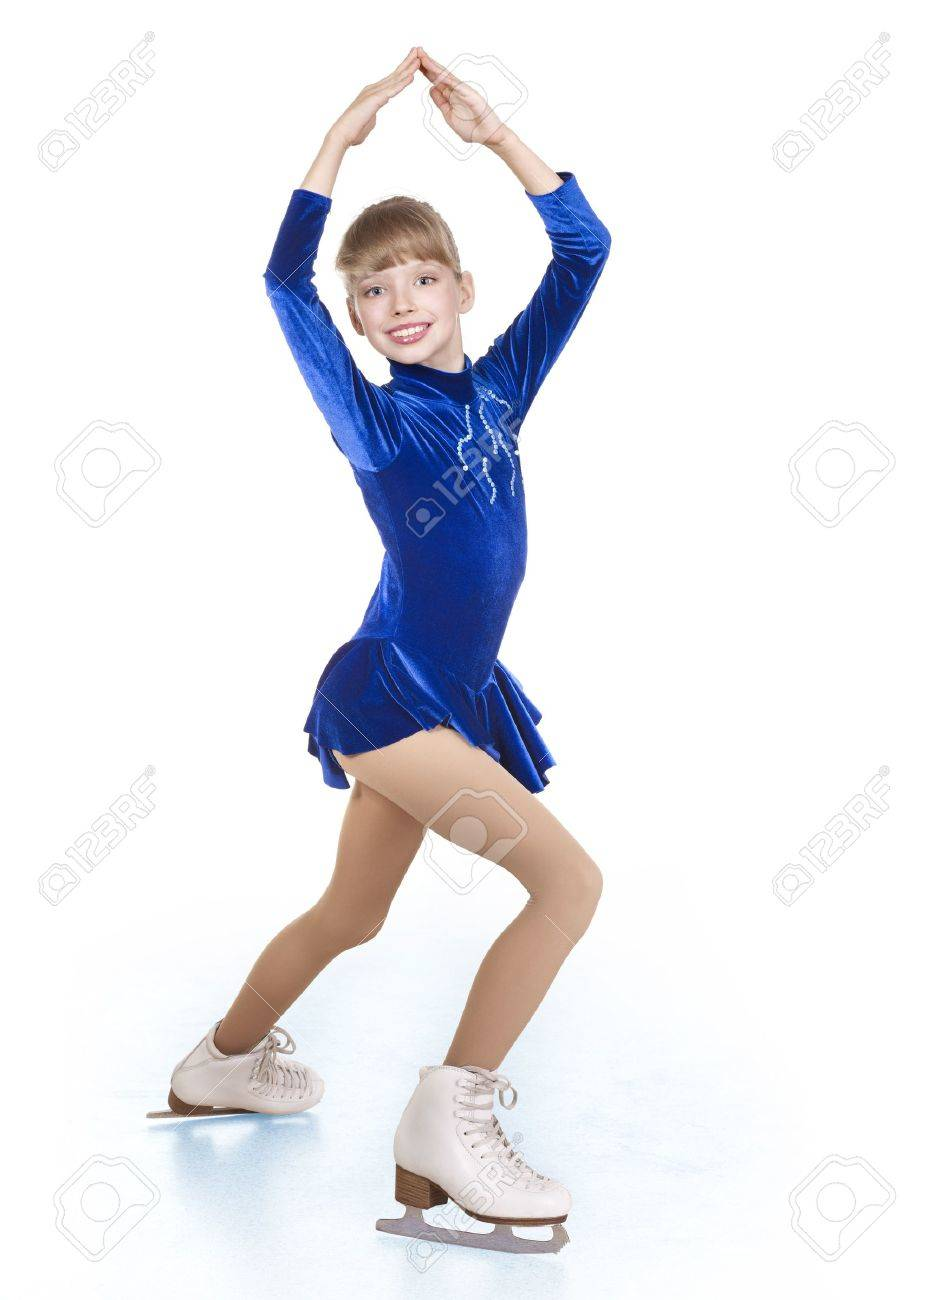 Happy young girl figure skating. Isolated. Stock Photo - 8383342